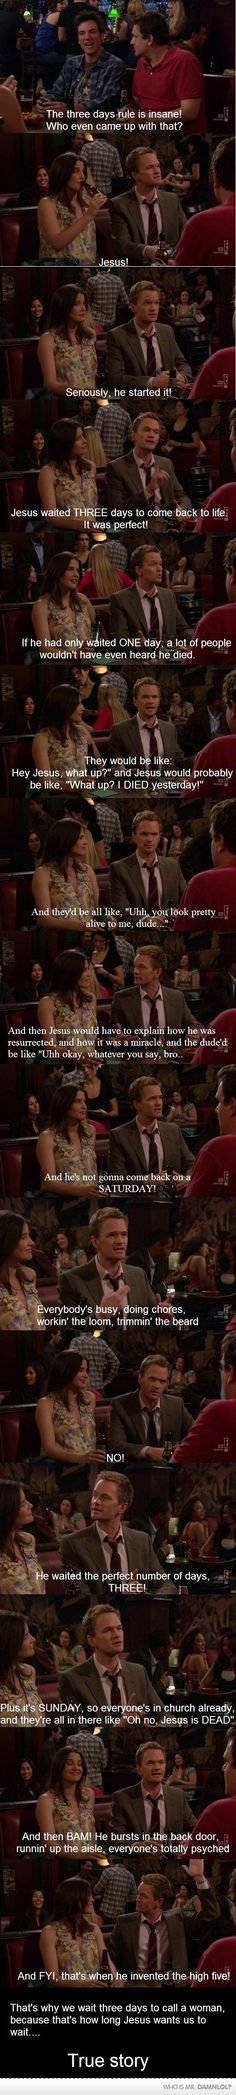 And that's why we wait three days, because Jesus started it. True story hahaha. Gotta love Barney.